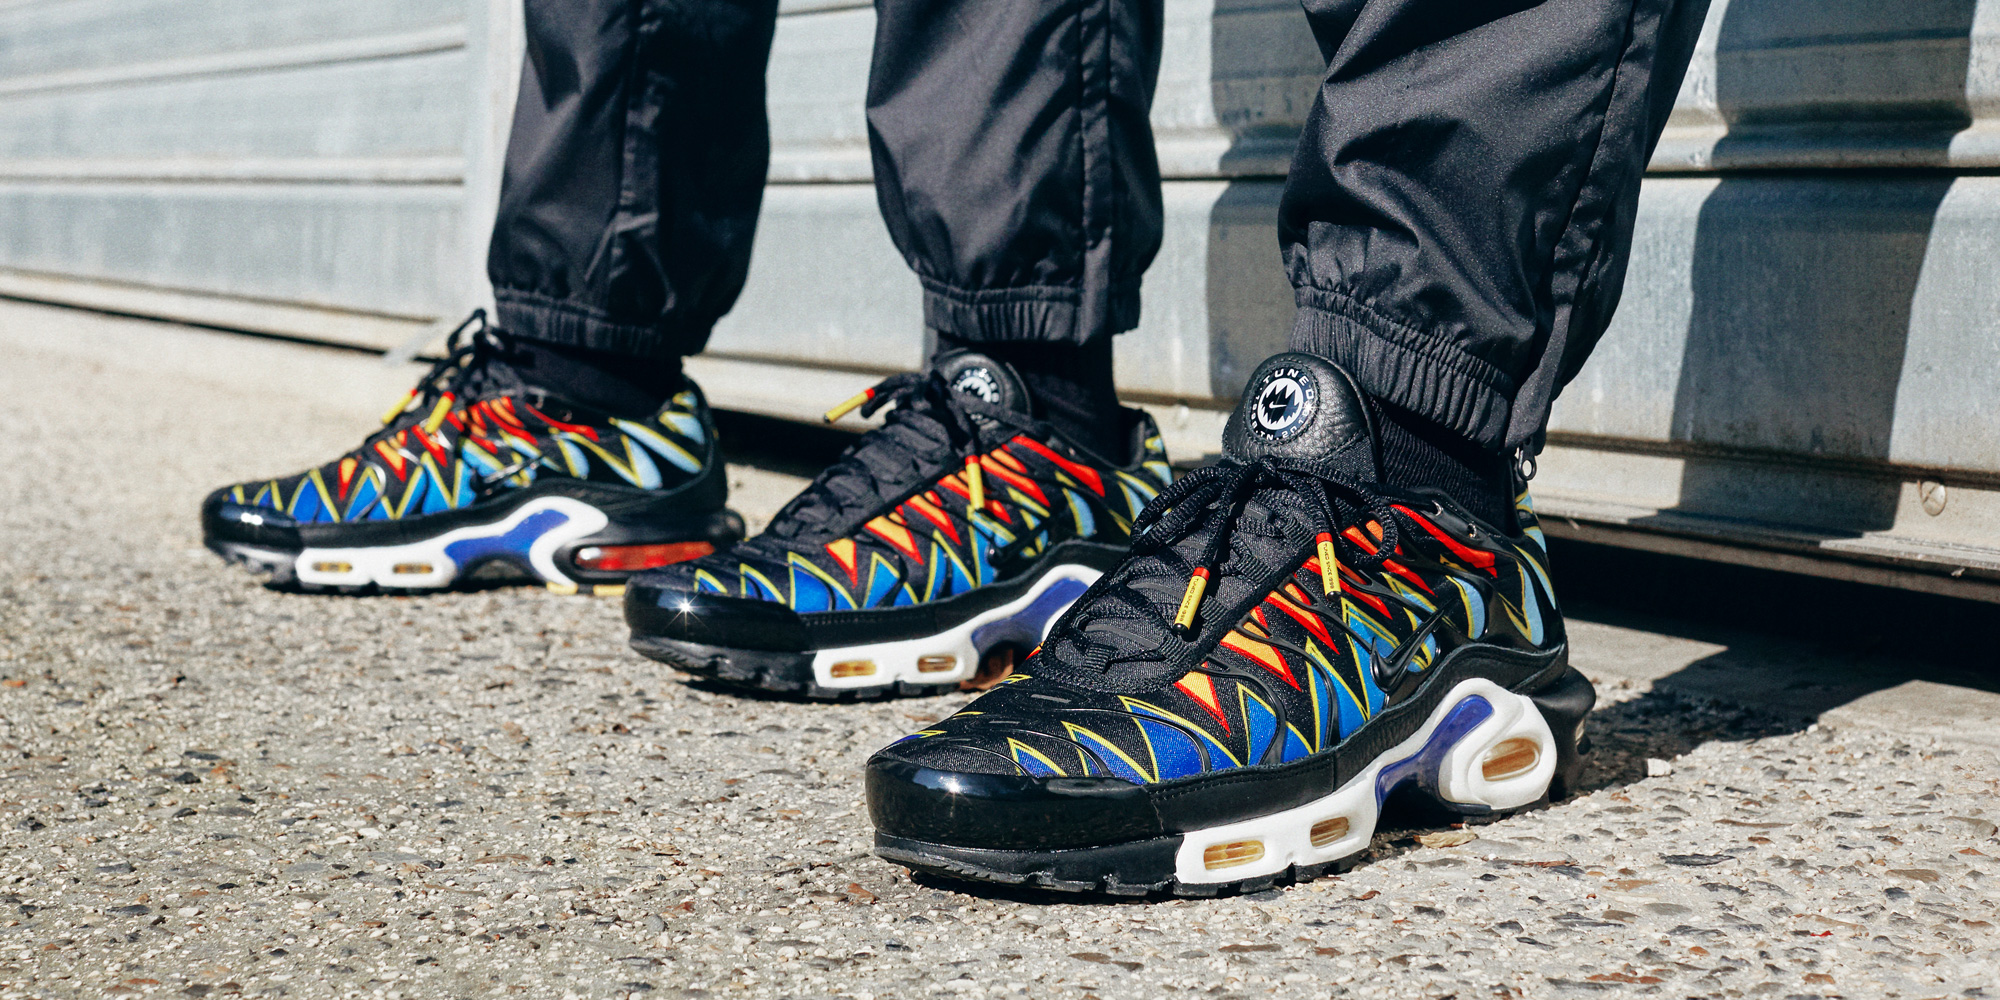 Sneakersnstuff worked with Nike and up and coming Paris artists Flyest Shot and Lean Chihiro to capture the Nike Air Max Plus (France Exclusive) in Paris.